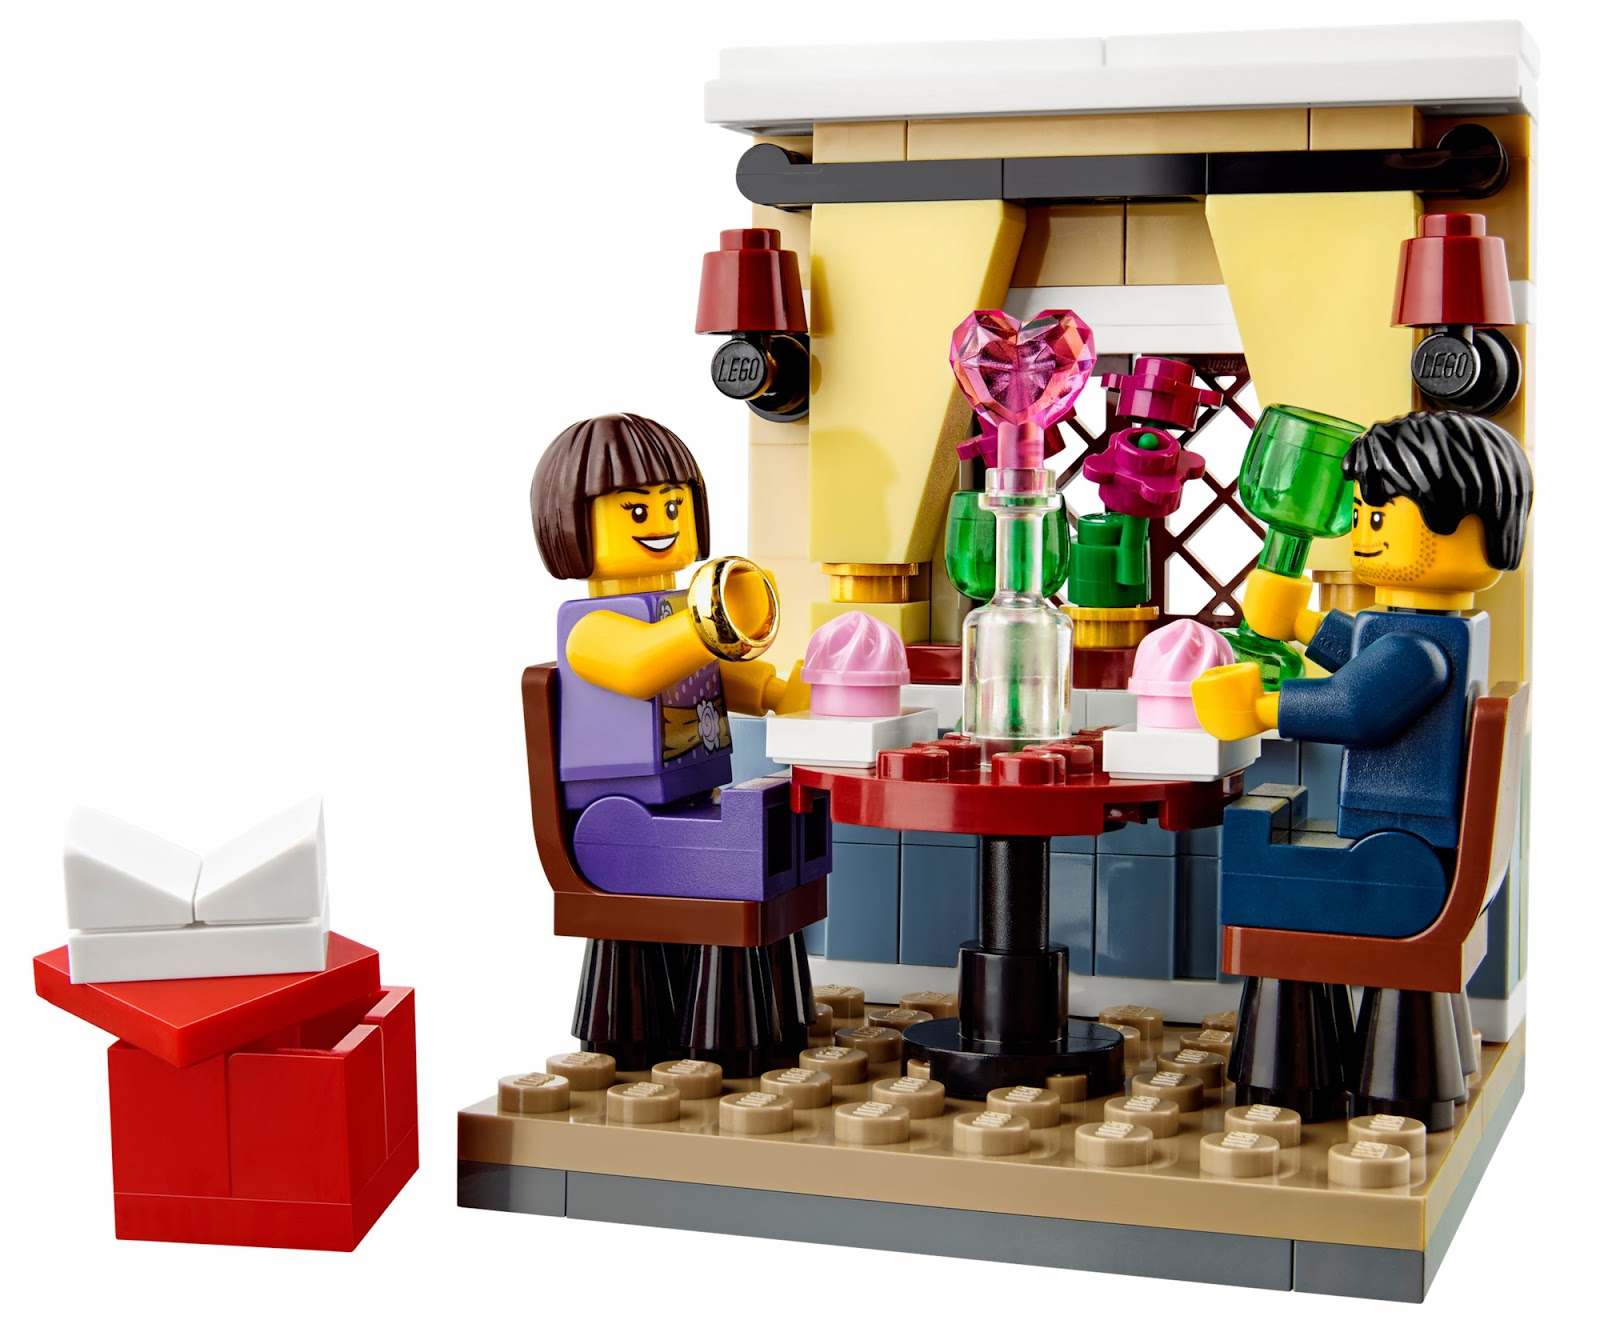 Valentine S Day Toys R Us : The brickverse lego in mood for love this valentine s day